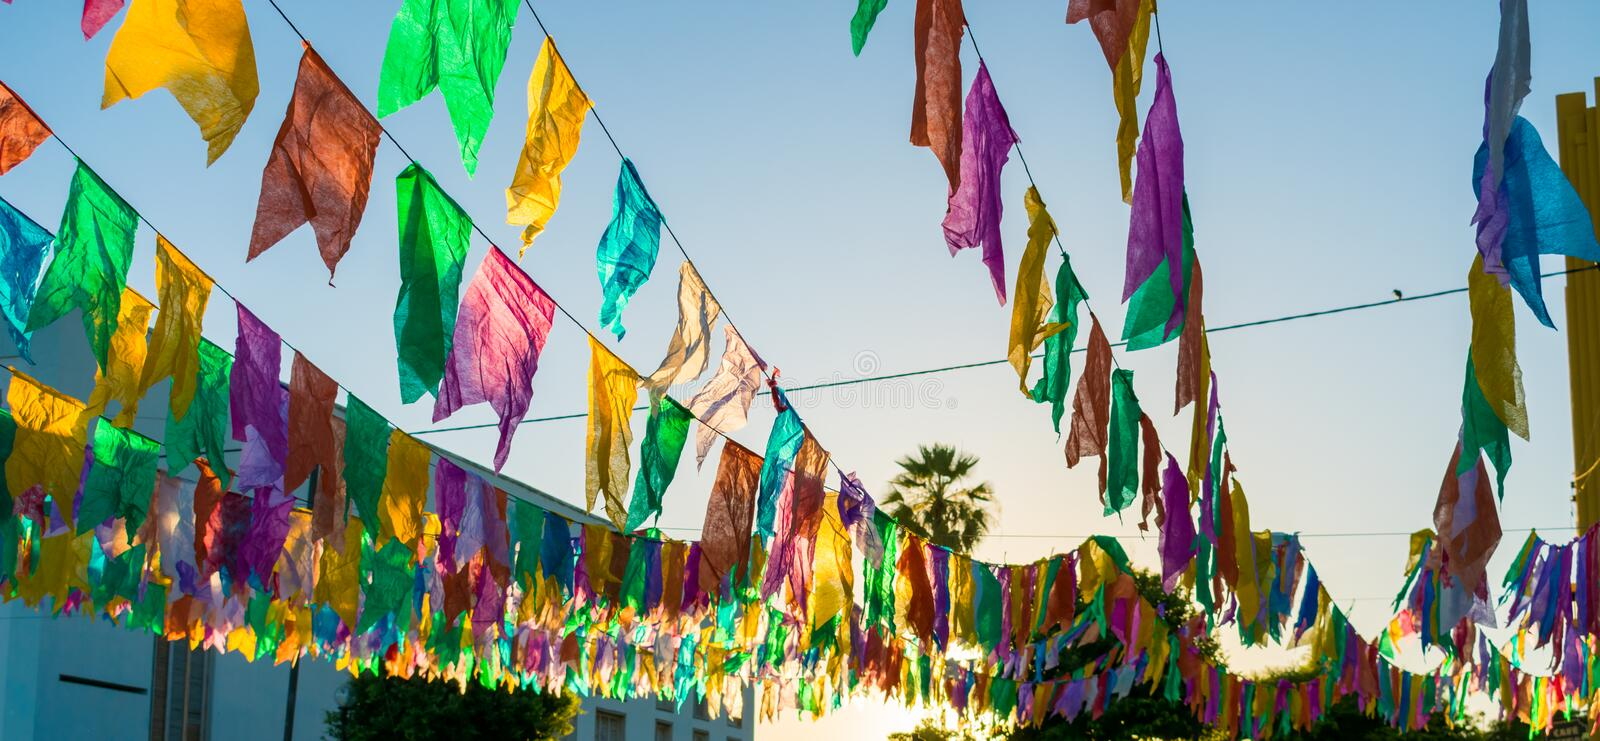 Colorful flags used for decoration at the June Festivals aka festas de Sao Joao, popular festivities in Brazil. Typical colorful flags used for decoration at the royalty free stock images